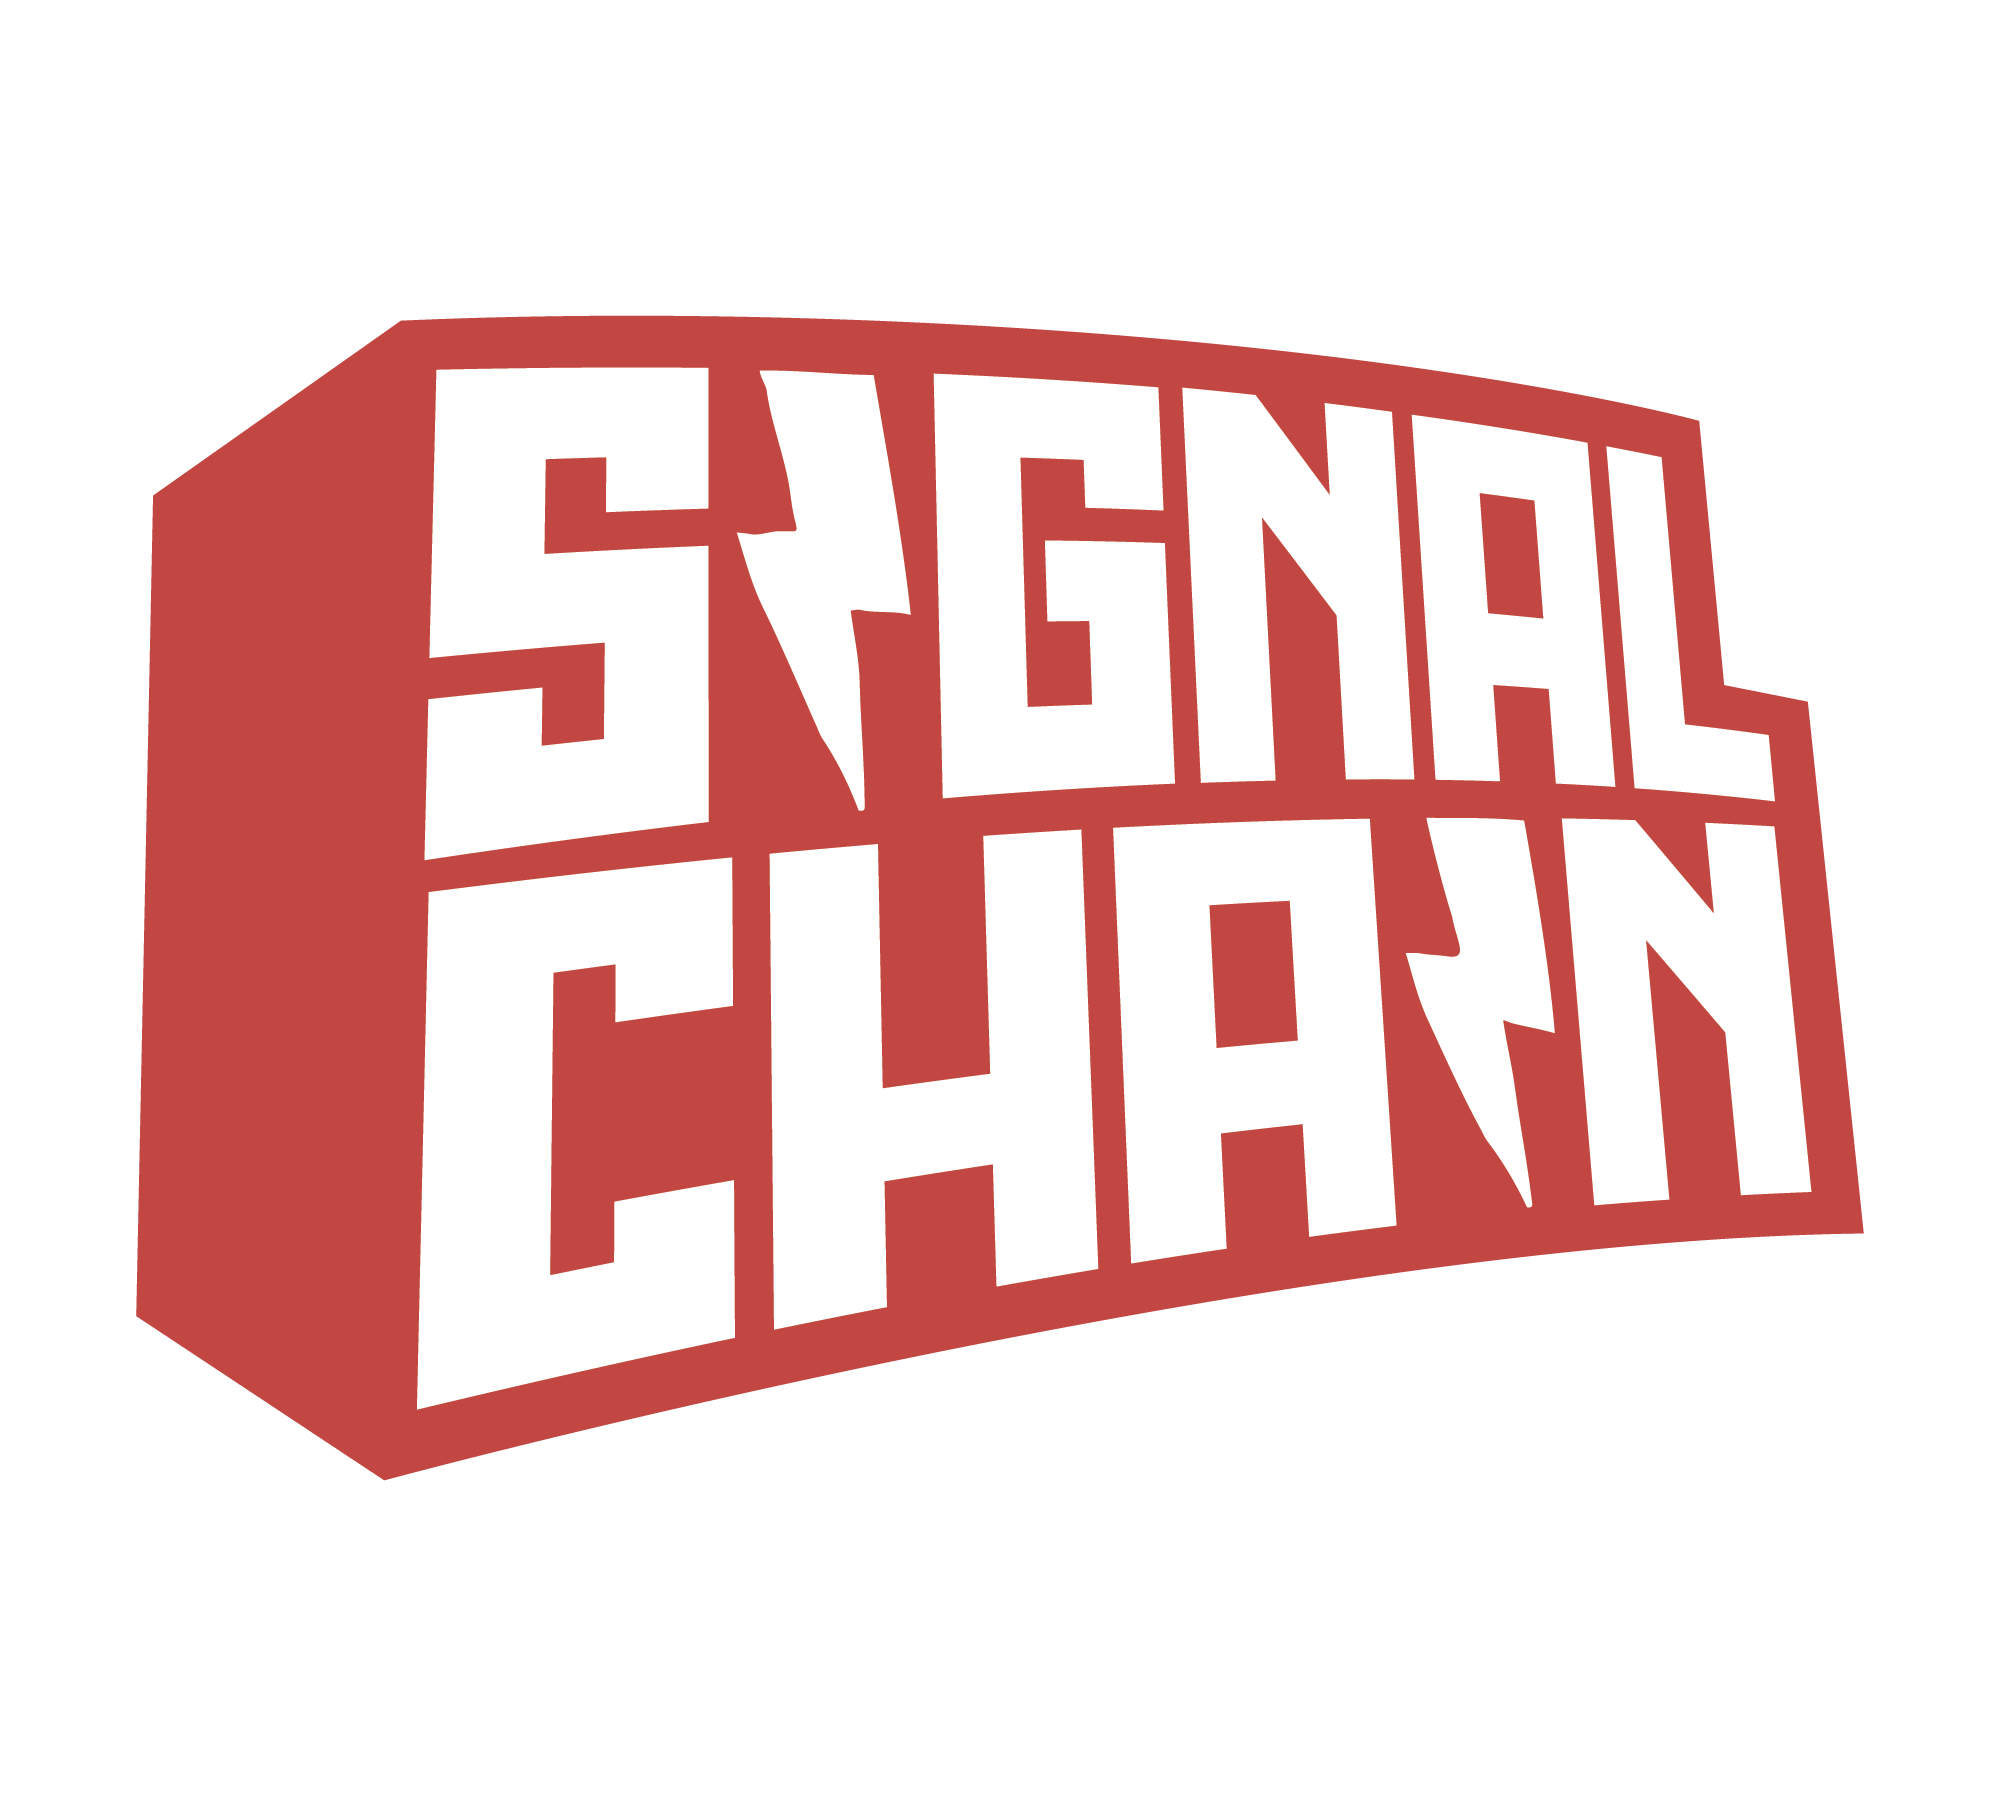 signal-chain-4d-emblem-red-medium.png